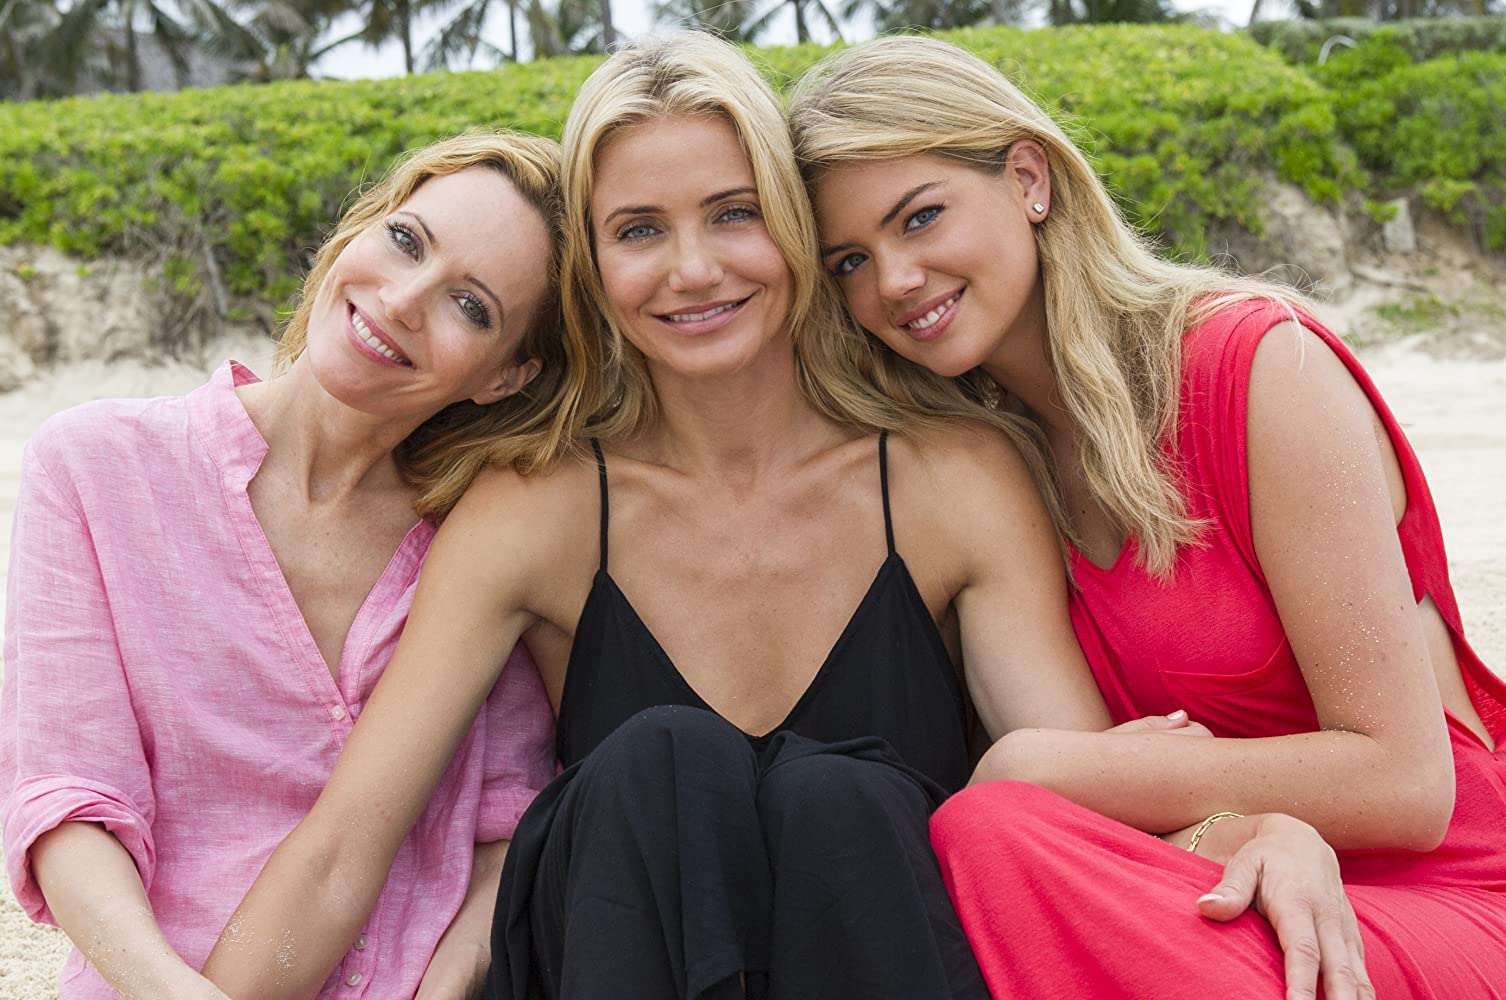 The Other Woman Image One